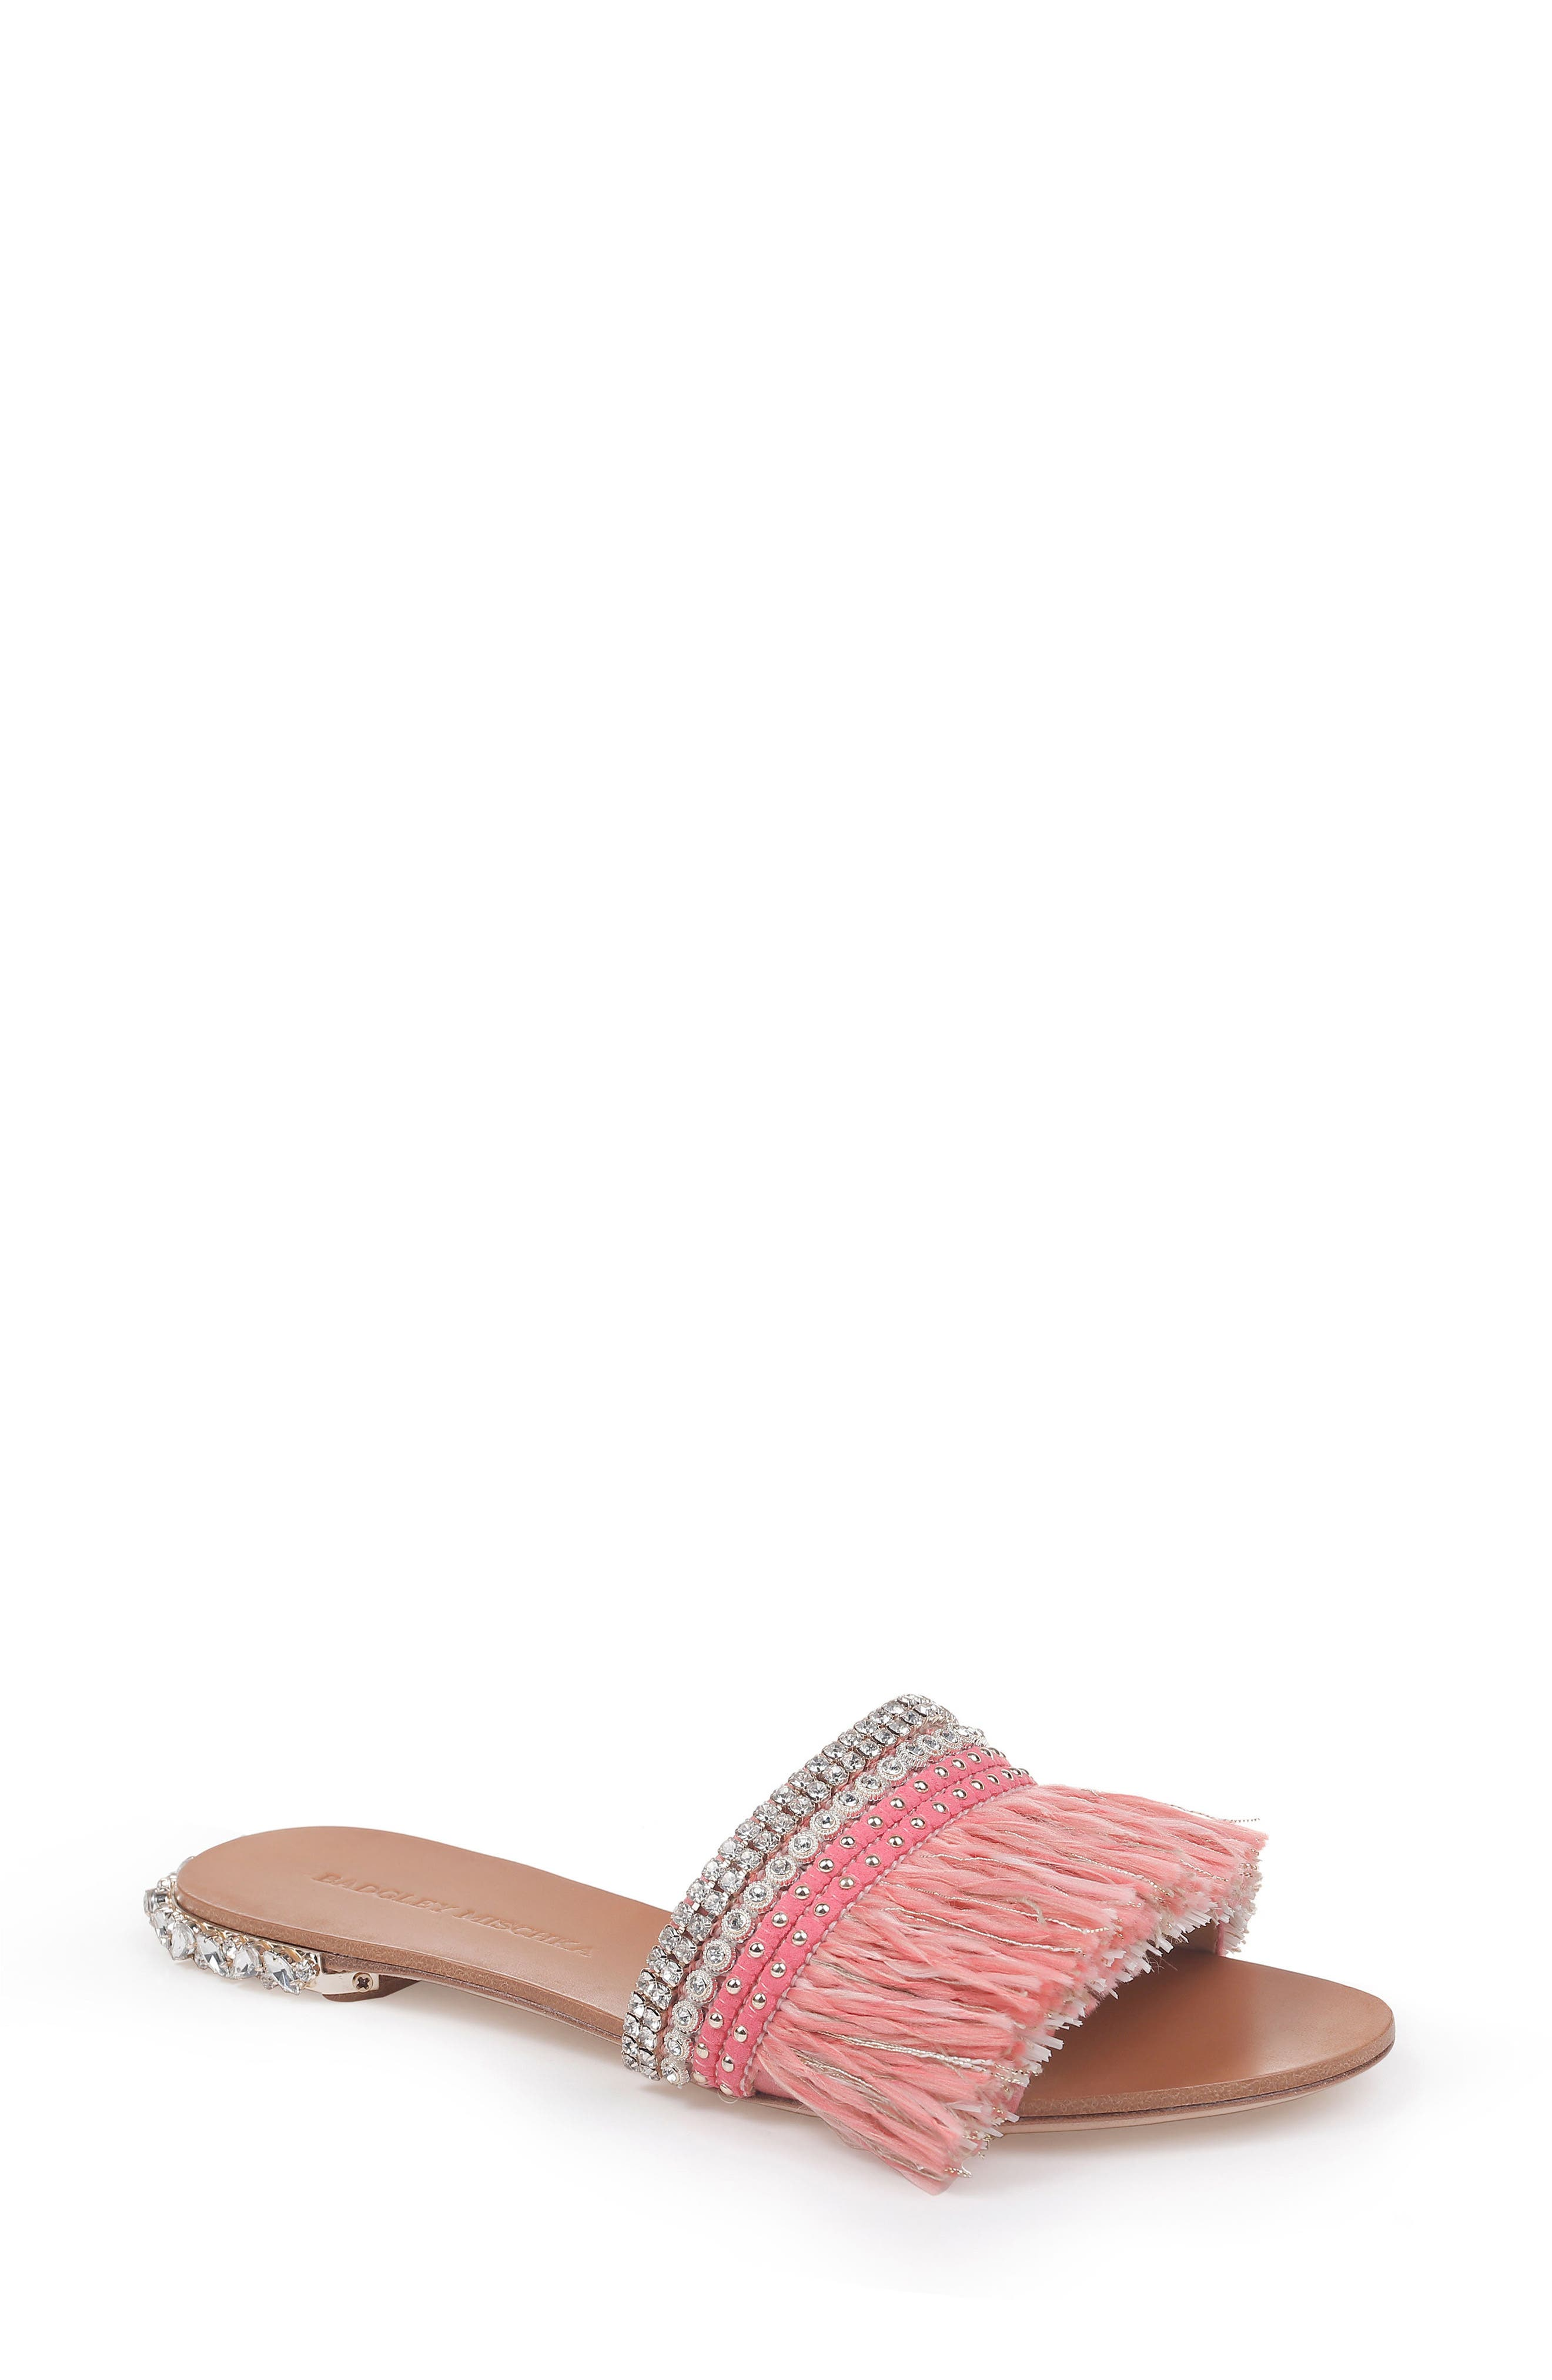 Sharlene Sandal,                             Main thumbnail 1, color,                             GRAPEFRUIT SATIN